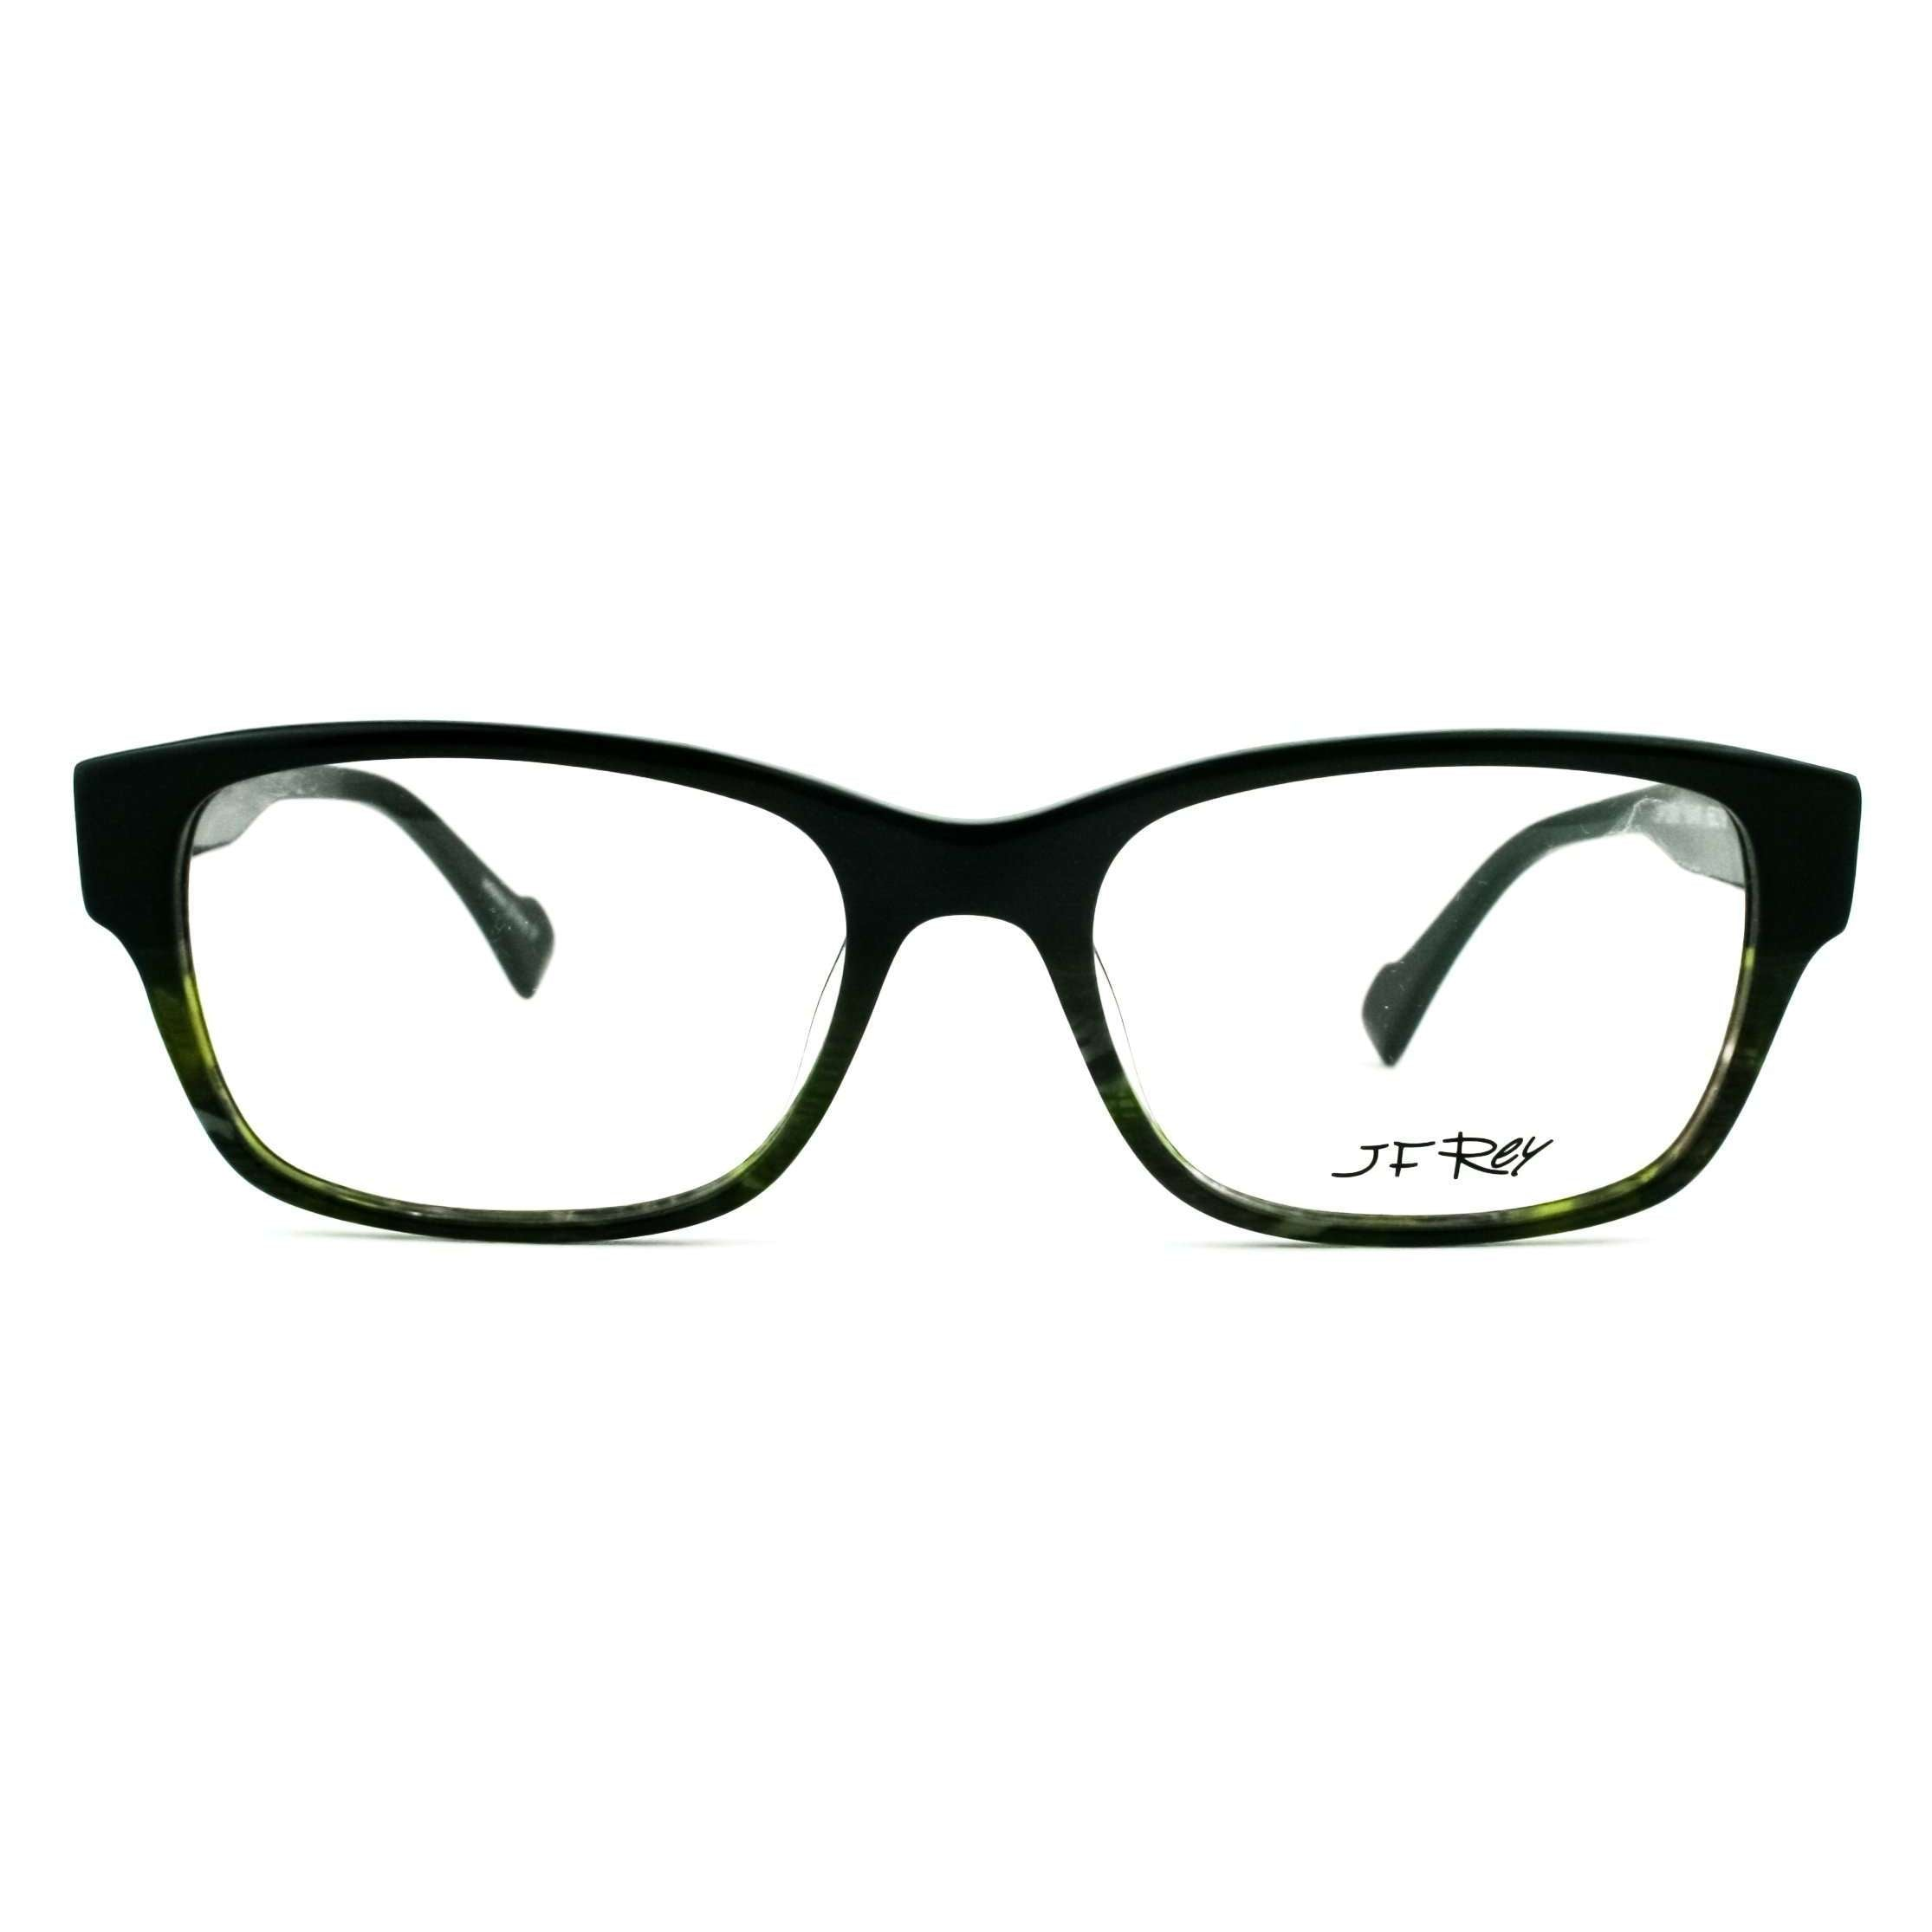 JF Rey Model 1295 0042 Designer Glasses